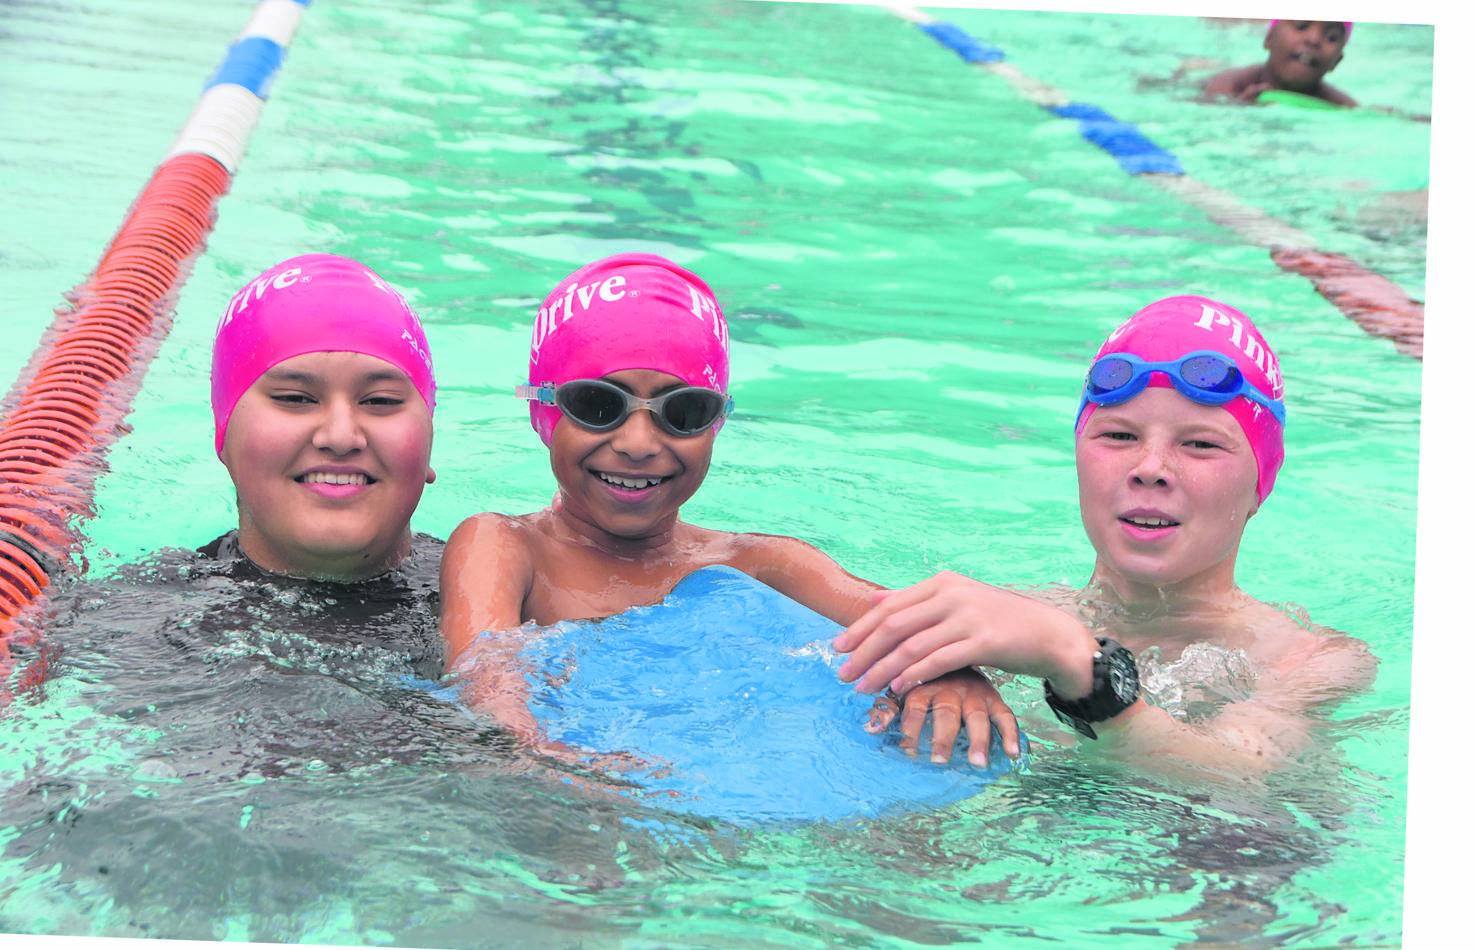 Cordwalles Preparatory School PinkDrive Swimathon 2019 was an amazing success. The Cordies Family Teams really came to the fore on a rather chilly day, banding together to support the initiative. Together they raised over R30 000 for their respective charities. Enjoying the PinkDrive Swimathon are Mahomed Haseeb Moosa (left), Tarik Ramdhani and Murray McHugh.PHOTO: supplied